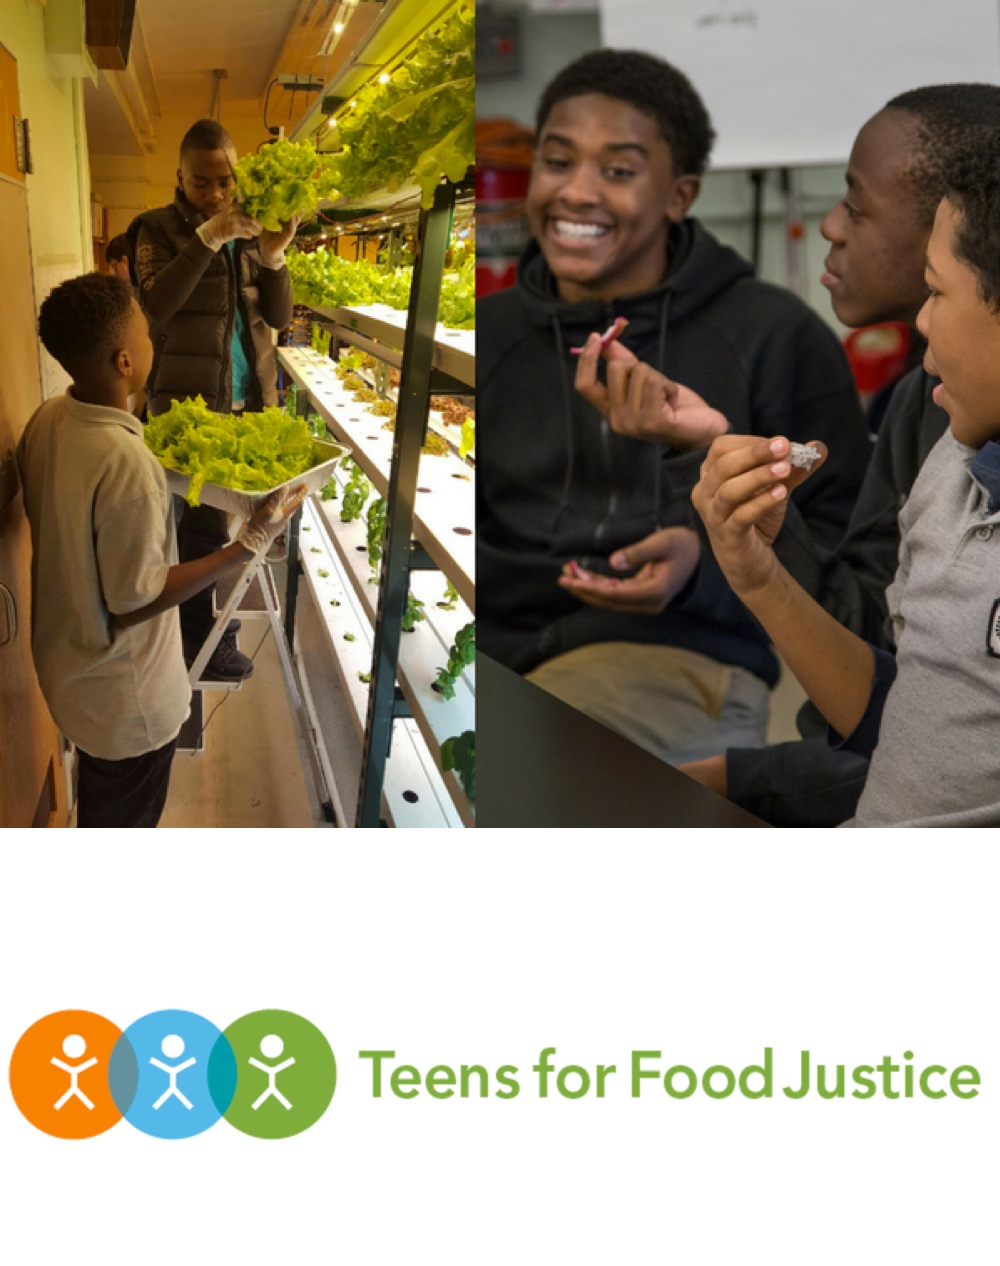 Teens for Food Justice is a youth-led food justice movement that works to bring nutritious and healthy foods to those who need it. -